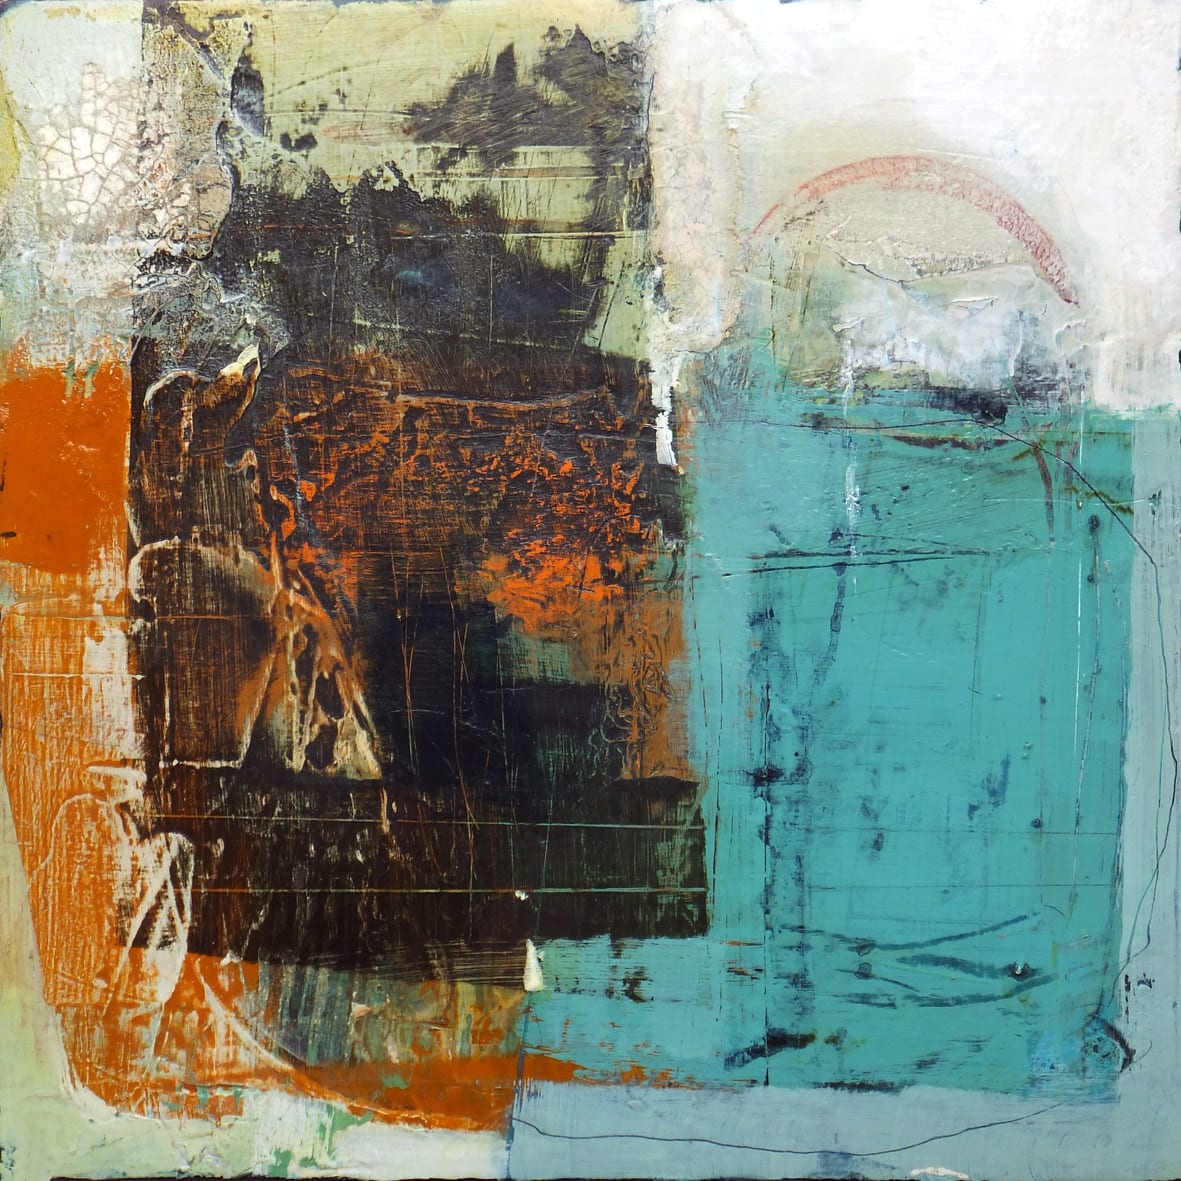 """<span class=""""link fancybox-details-link""""><a href=""""/store/artworks/7764-joanne-last-colours-of-cornwall-2-2021/"""">View Detail Page</a></span><div class=""""artist""""><strong>Joanne Last</strong></div> <div class=""""title""""><em>Colours of Cornwall 2</em>, 2021</div> <div class=""""signed_and_dated"""">signed and dated on verso</div> <div class=""""medium"""">acrylic on board</div> <div class=""""dimensions"""">board: 30 x 30 cm<br /> framed: 41 x 41 cm</div><div class=""""price"""">£650.00</div><div class=""""copyright_line"""">Own Art: £65 x 10 Months, 0% APR + £10 deposit</div>"""